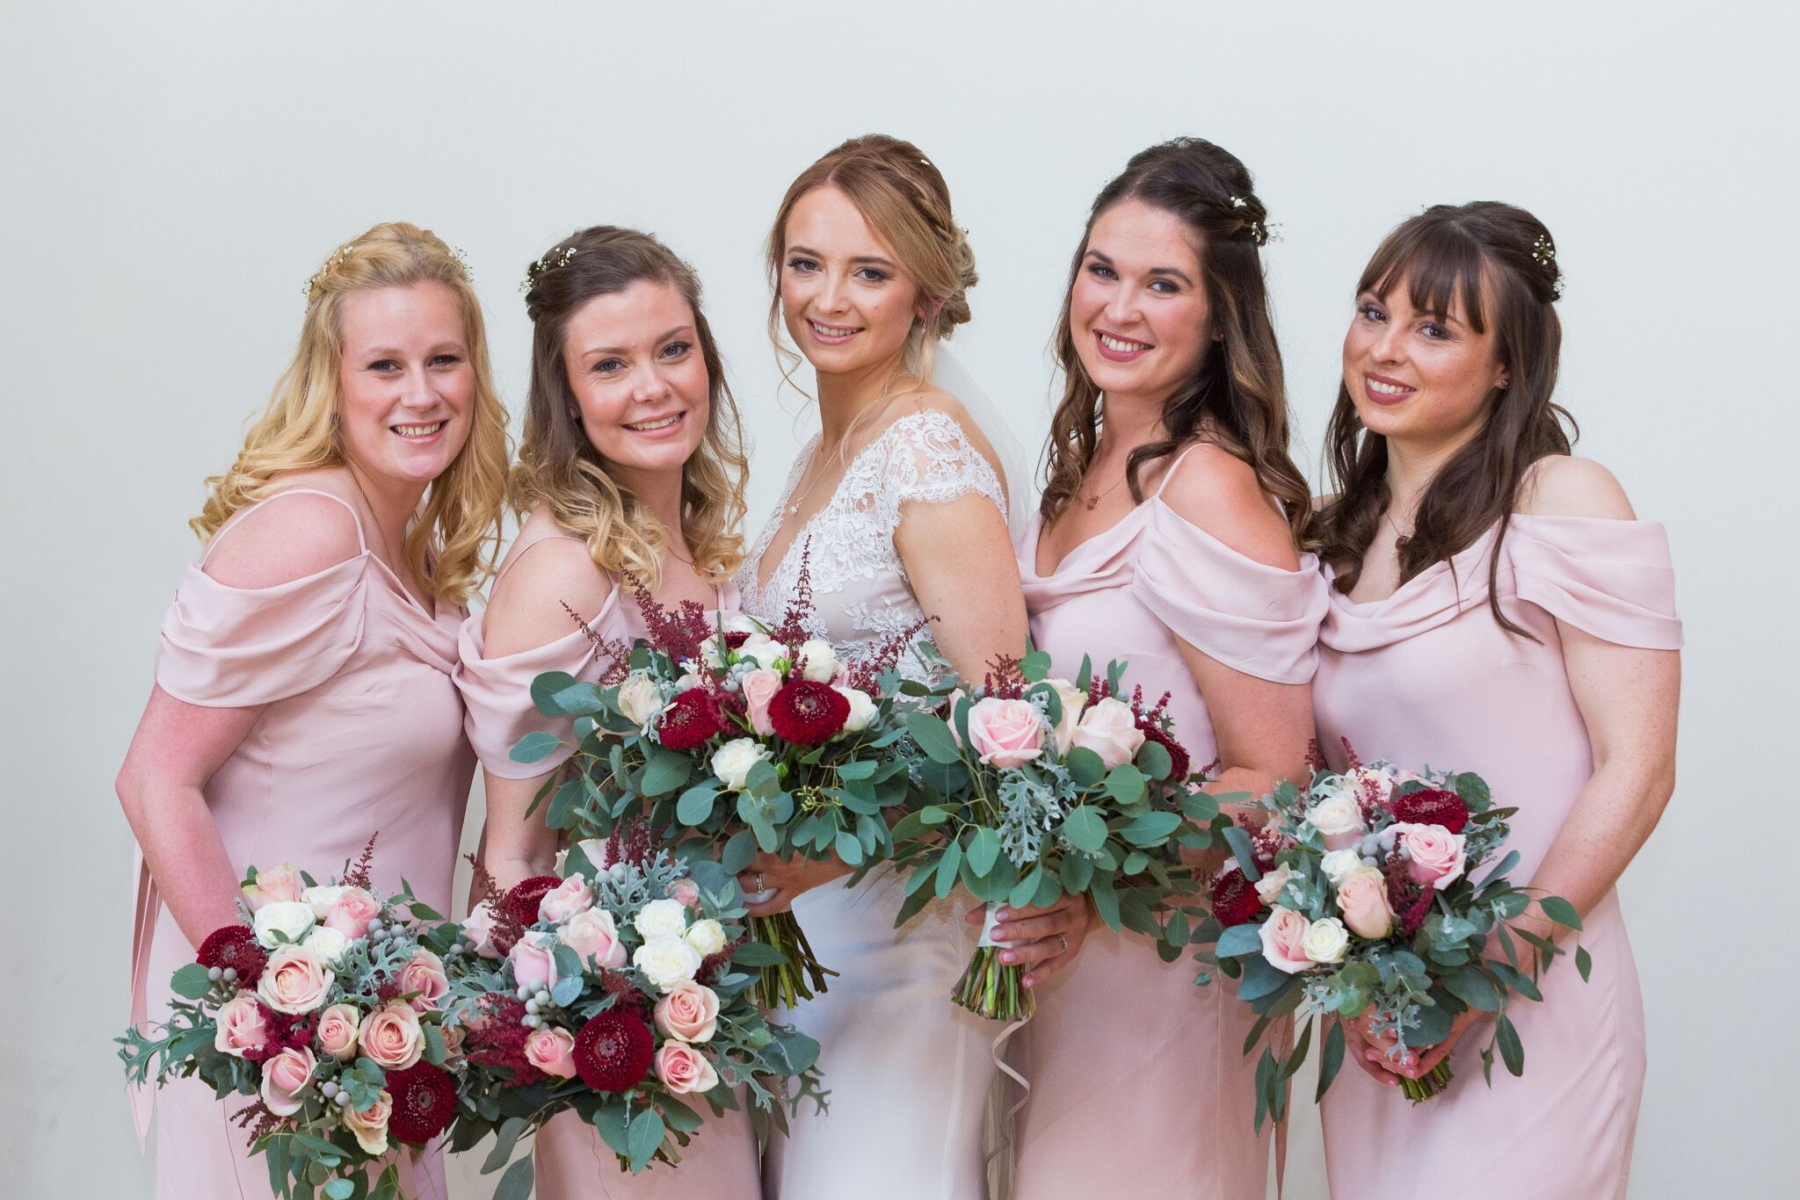 Suzi and Terry October 2017 - Bride and Bridesmaids